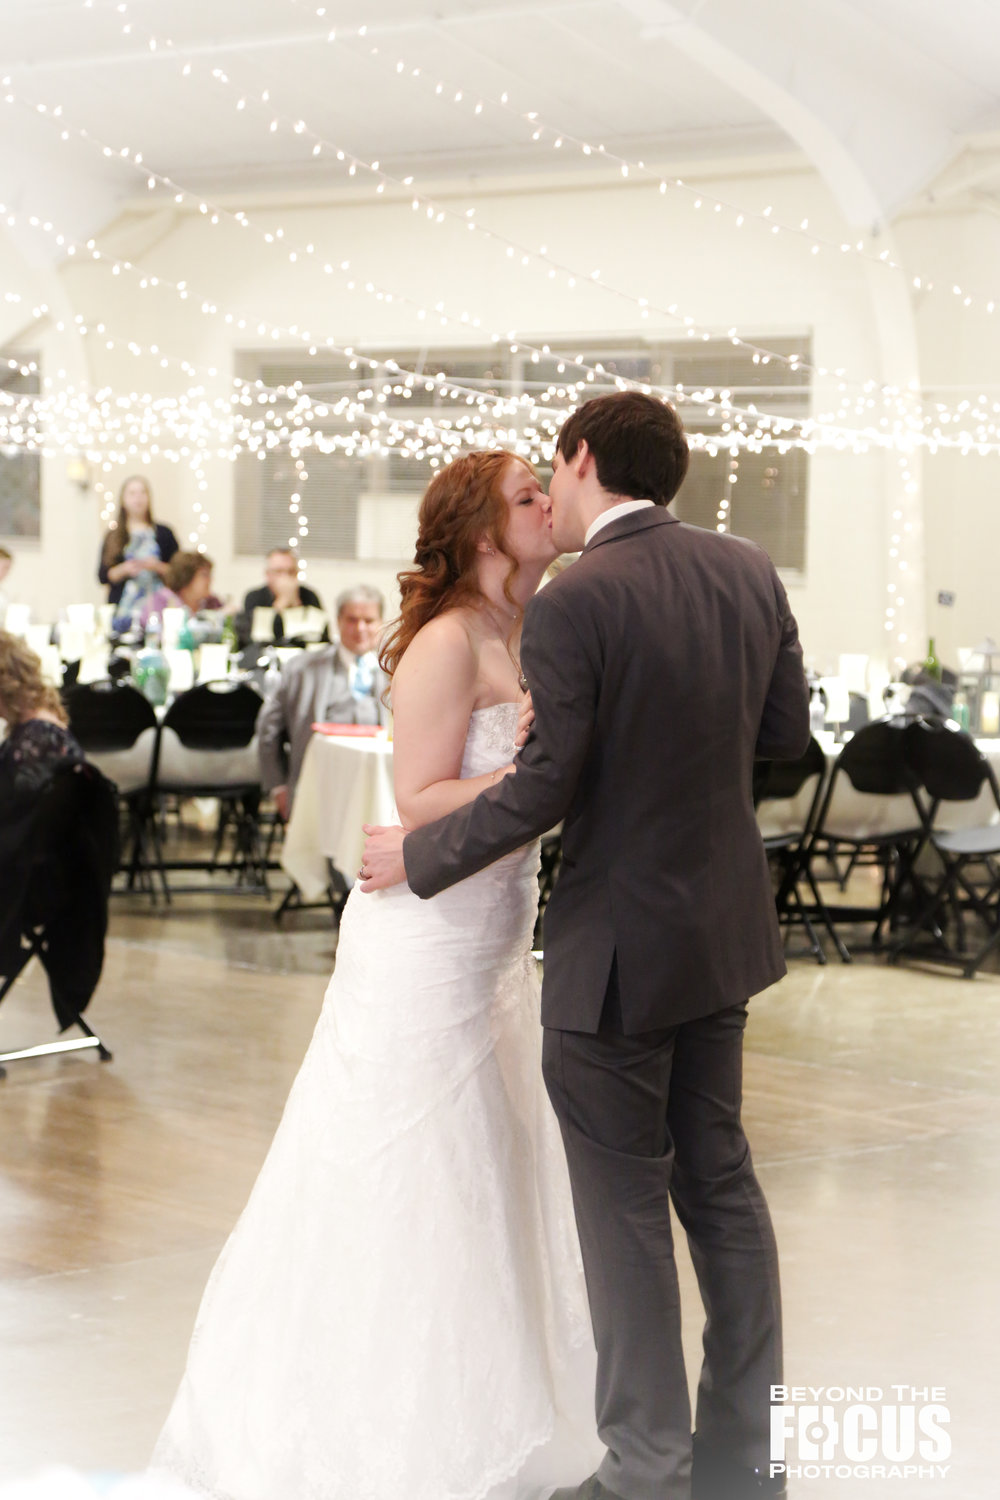 Alex_Katie_WeddingReception__90.jpg